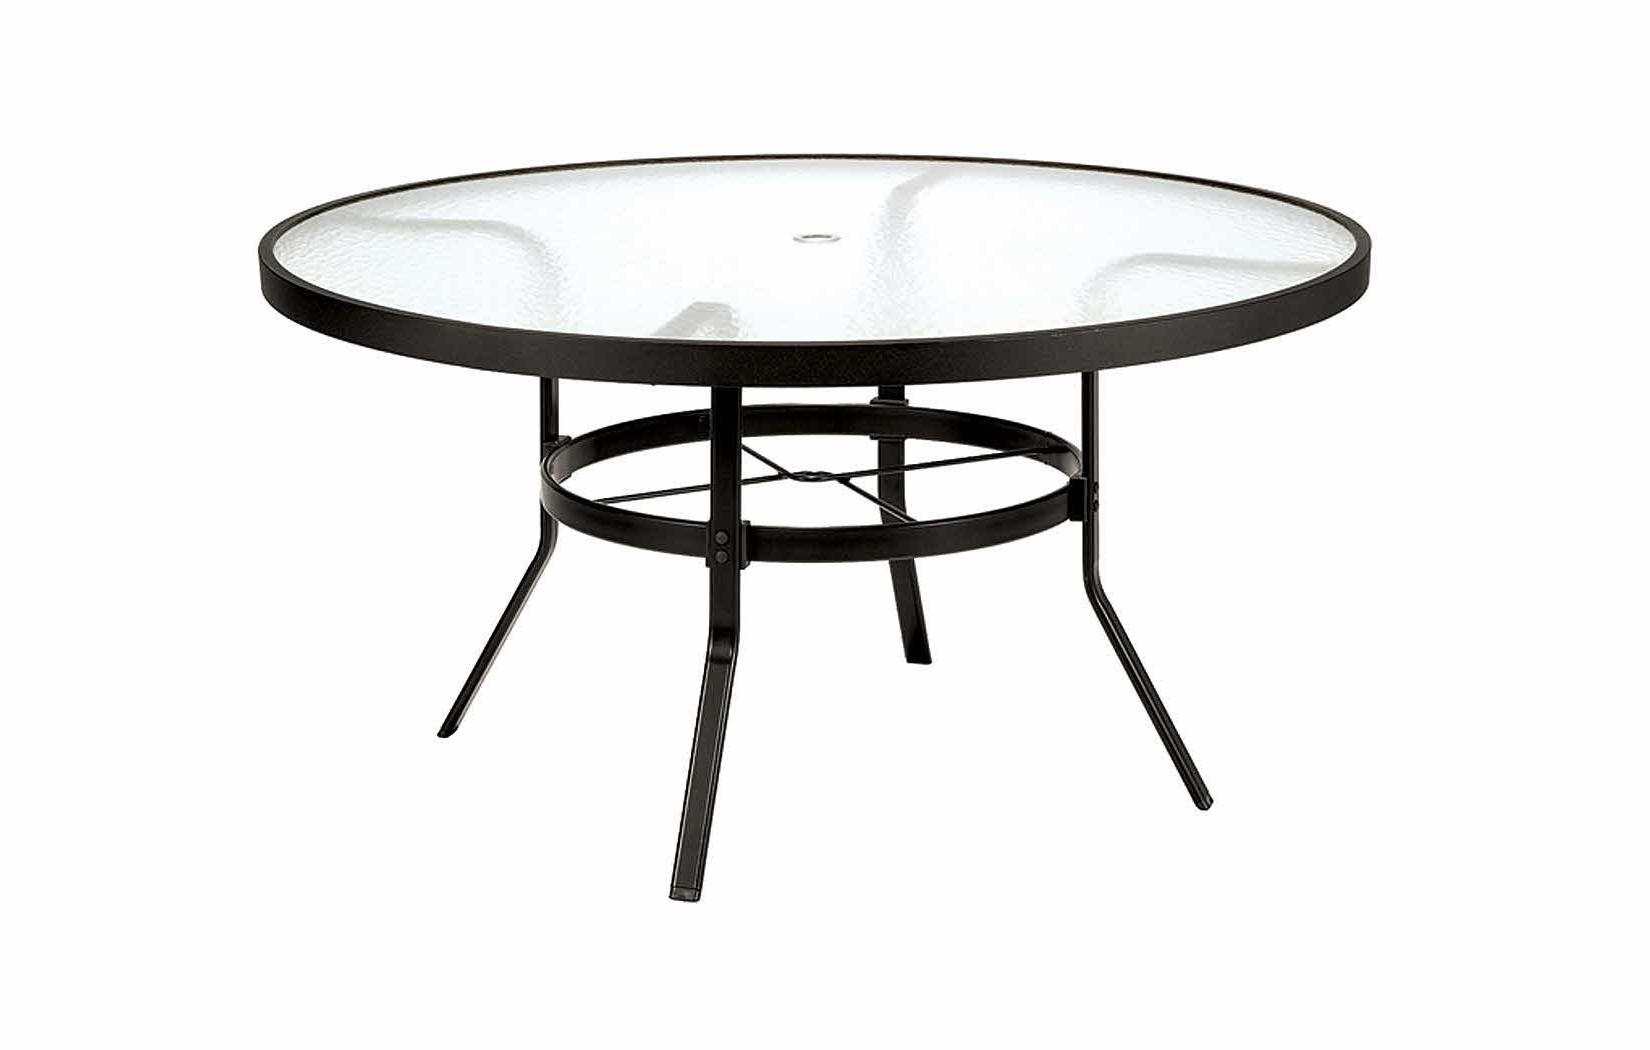 Fashionable Patio Tables With Umbrella Hole With Patio Table With Umbrella Hole – Home Design Ideas (Gallery 18 of 20)